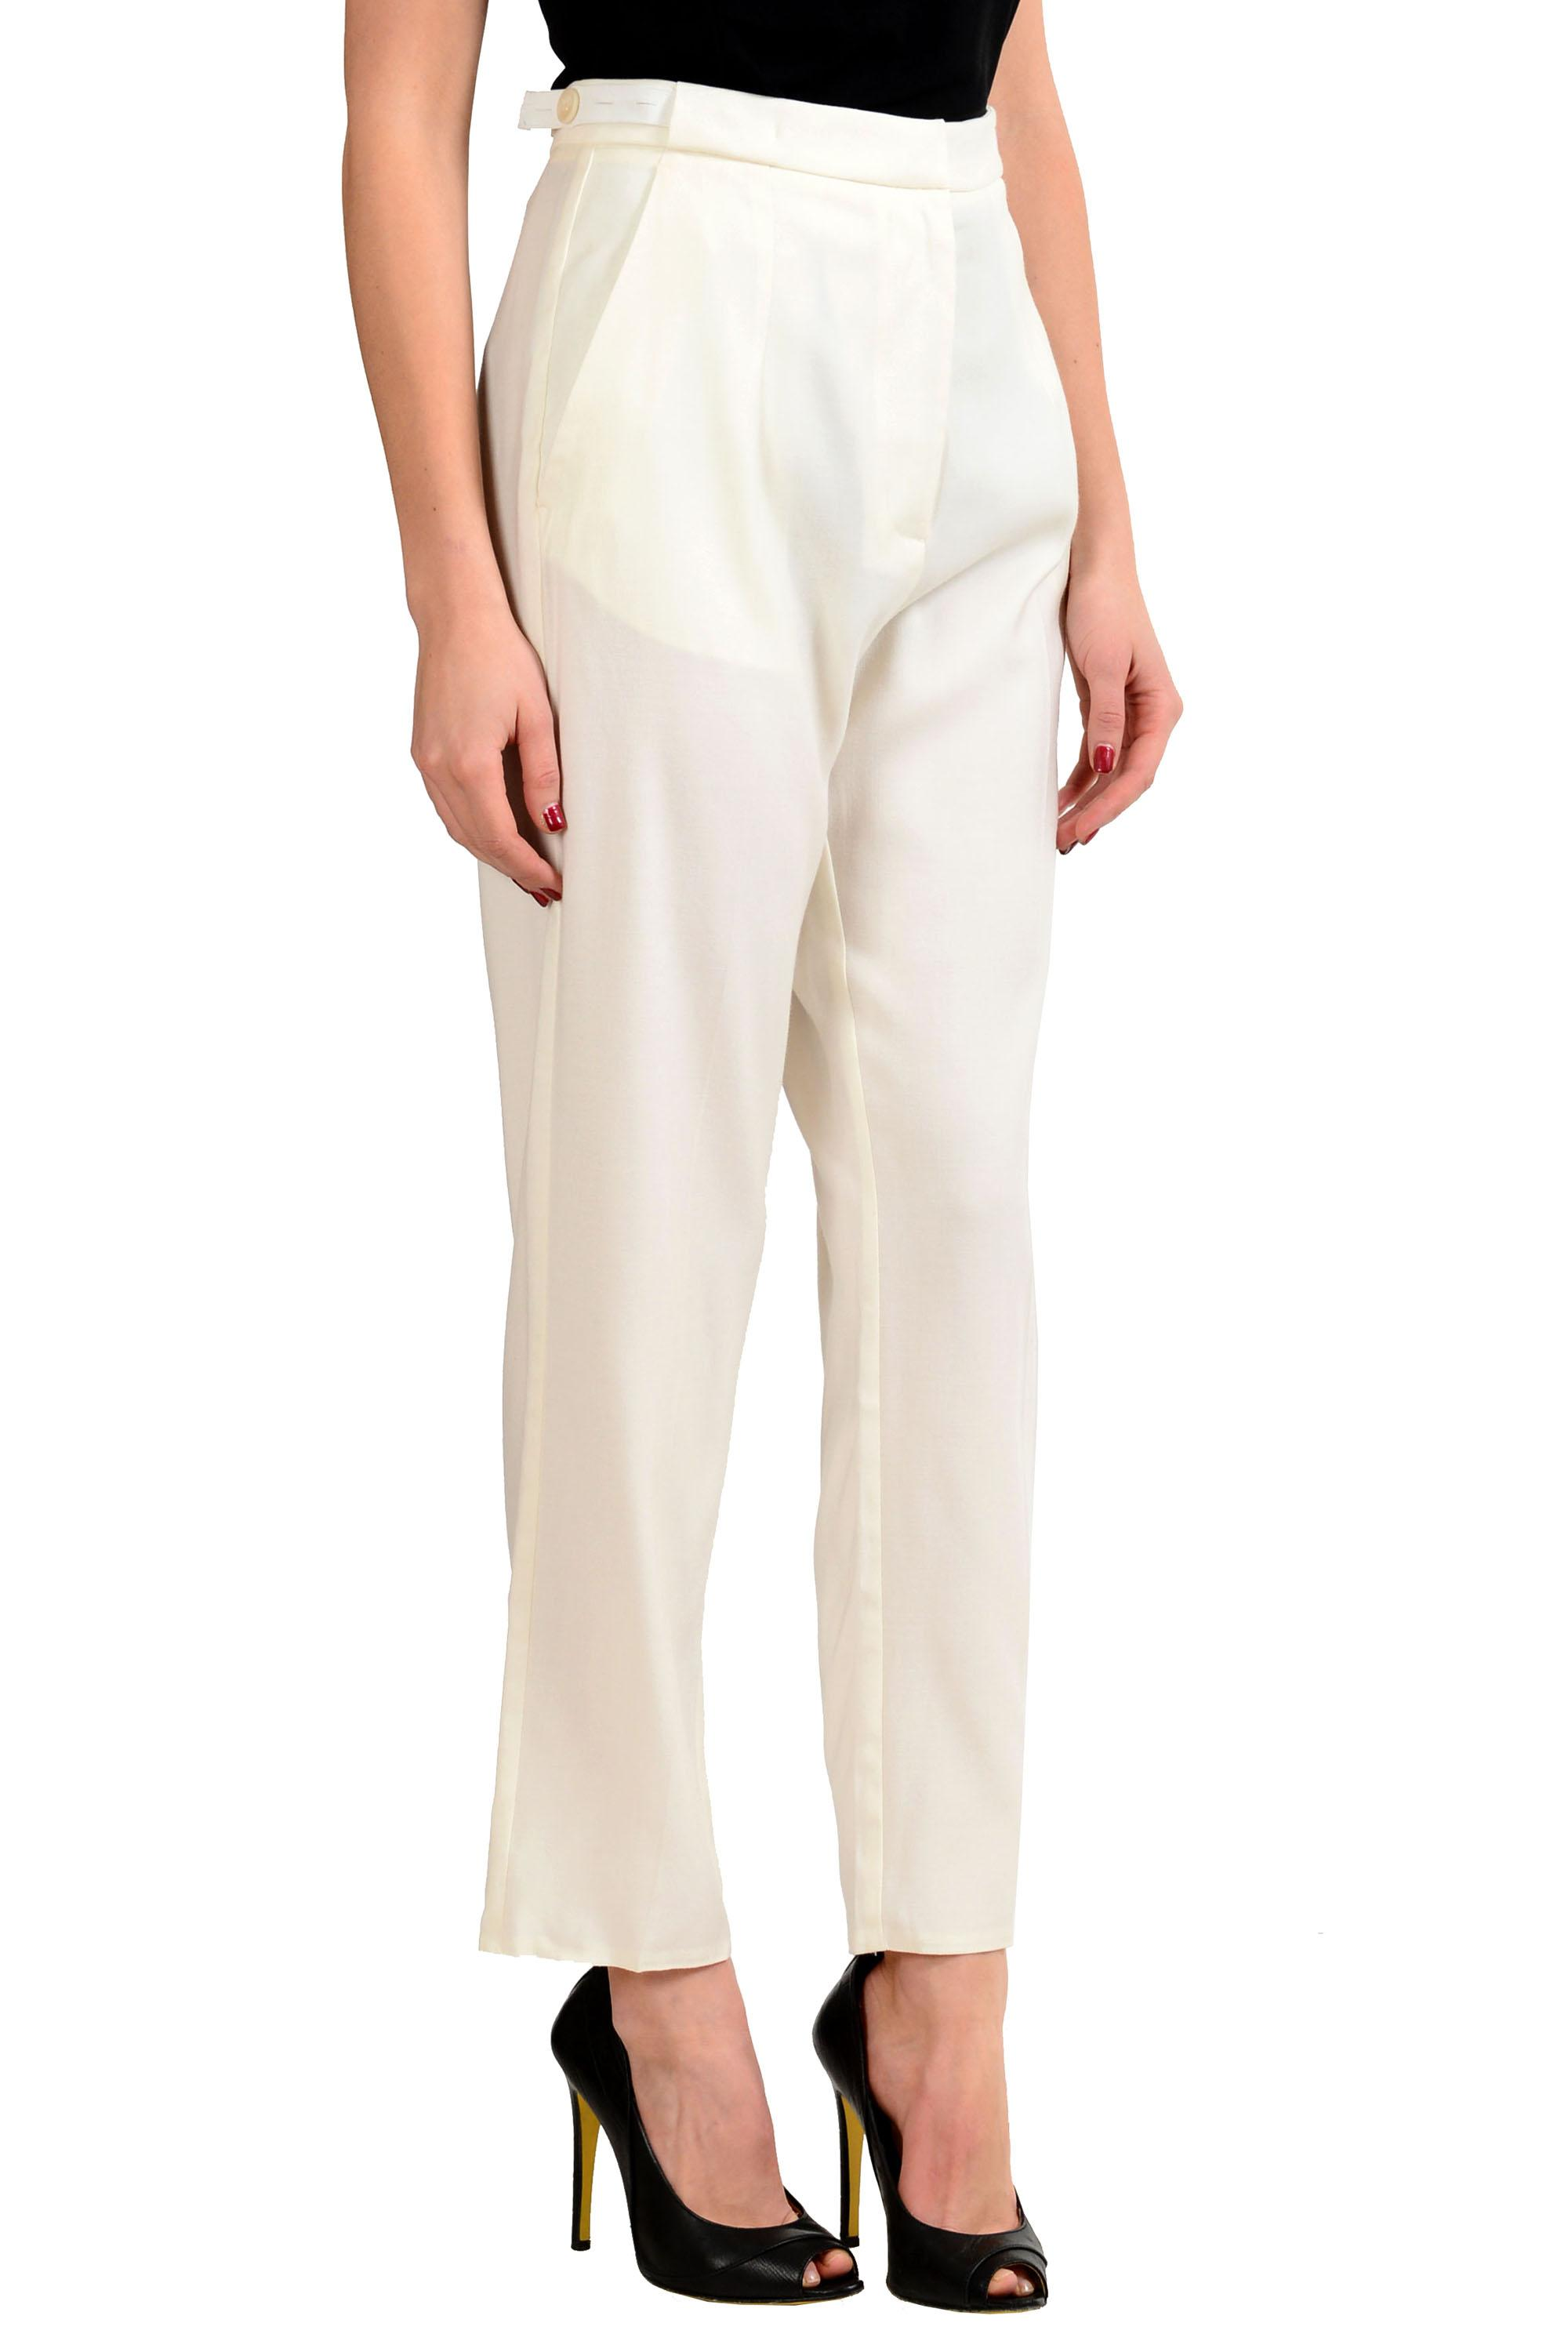 Mm6 By Maison Margiela Woman Wool Slim-leg Pants White Size 40 Maison Martin Margiela Cheap Price Pre Order Free Shipping Manchester Great Sale Clearance Footaction Buy Cheap New RHyyly